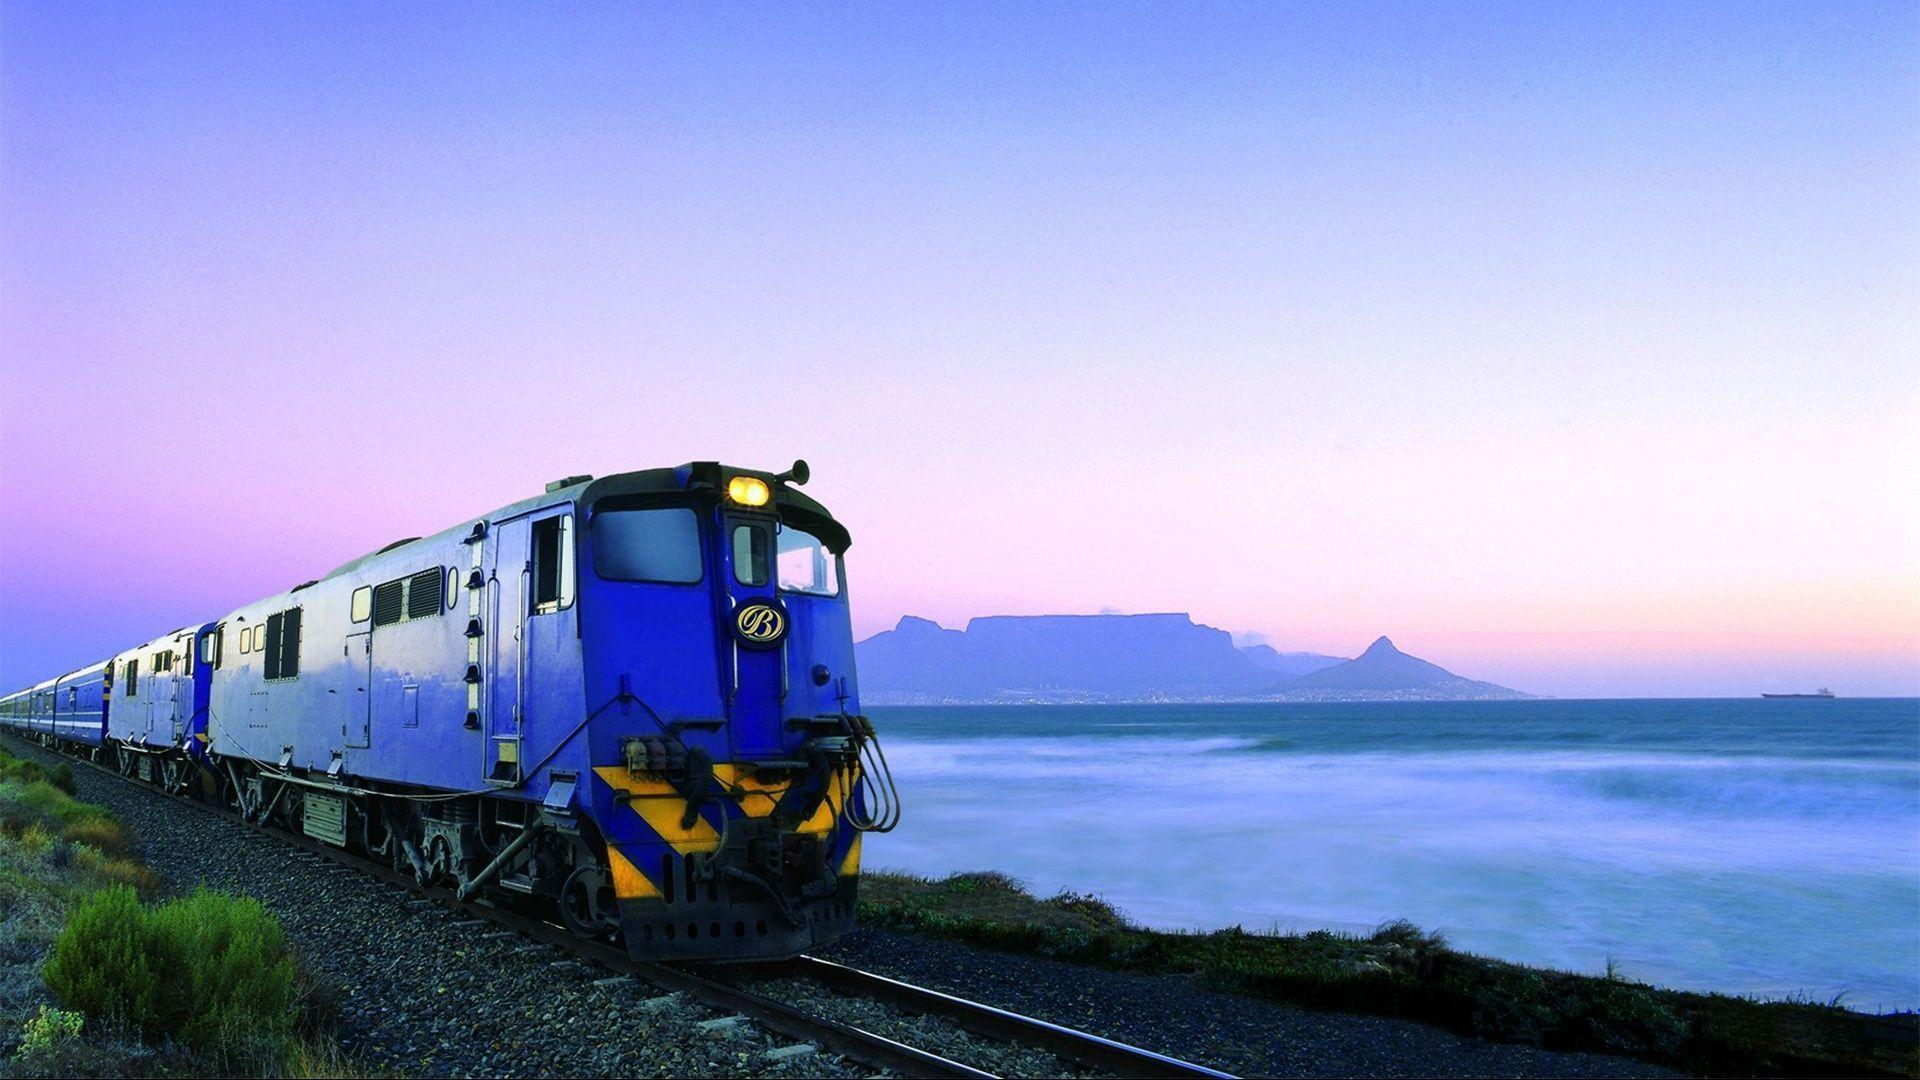 HD Train Leaving Table Mountain South Africa Wallpaper | Download ...